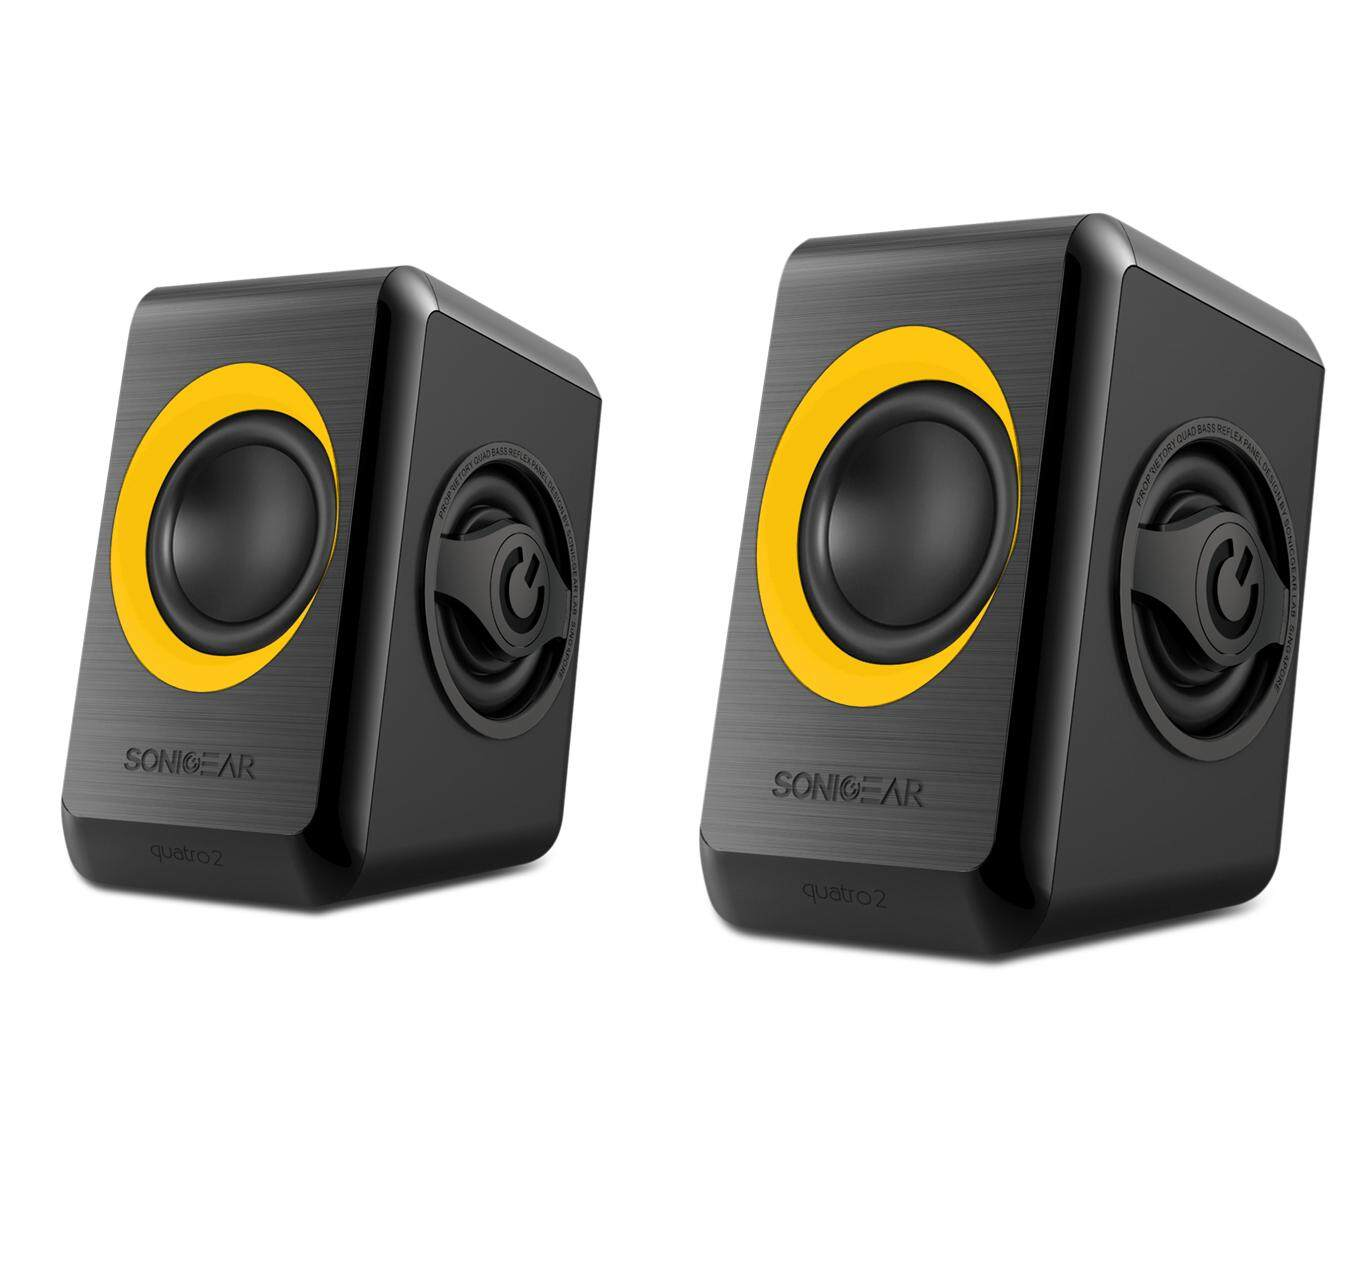 Sonic Gear Quatro 2 Stereo Speakers 2.0 with Quad Bass (USB Powered, Yellow Version, 1 Year Warranty)